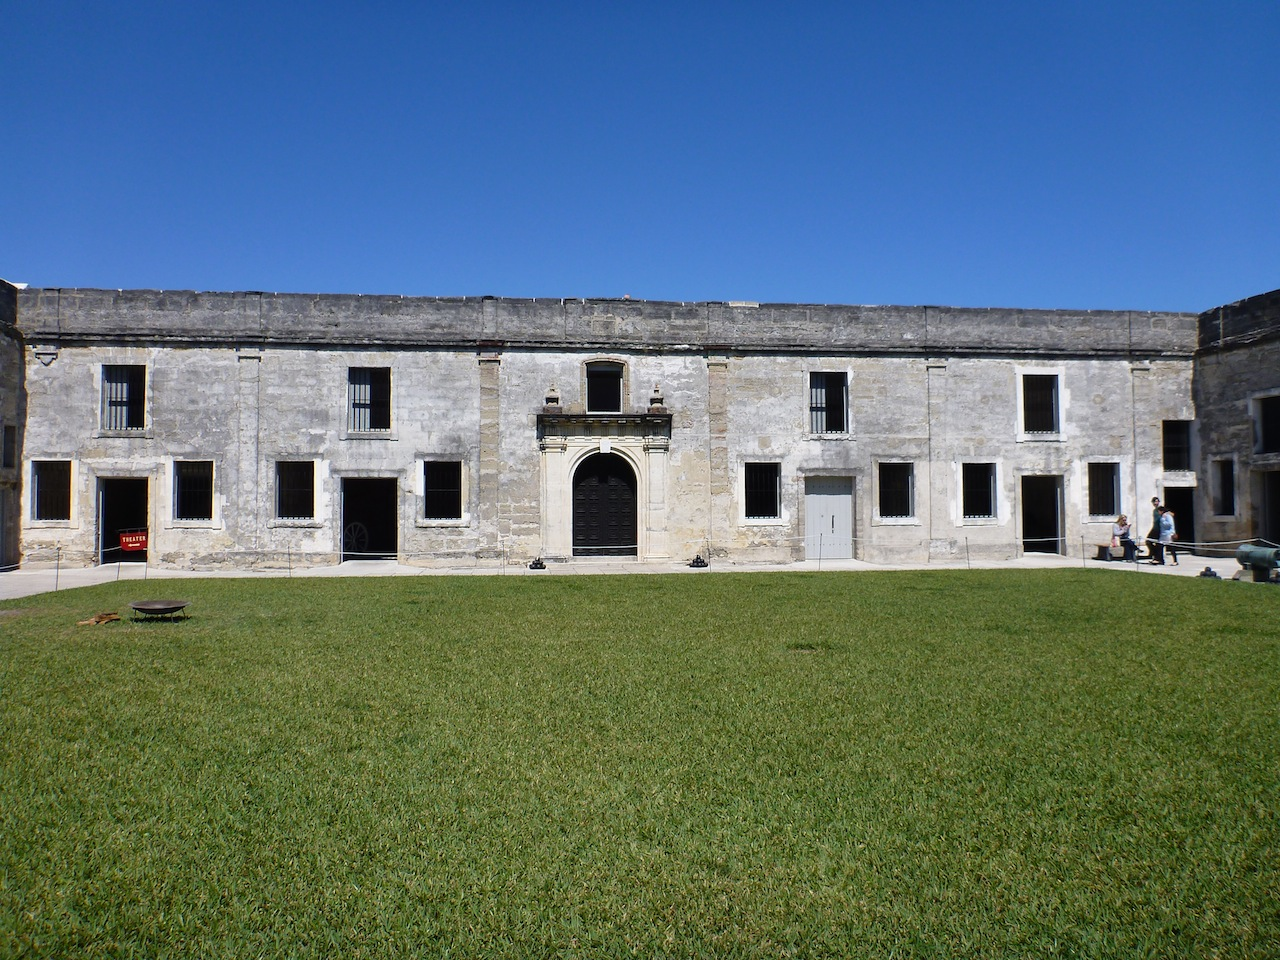 One Of The Walls Of The Castillo de San Marcos.  In The Foreground Is Some Of The Courtyard.